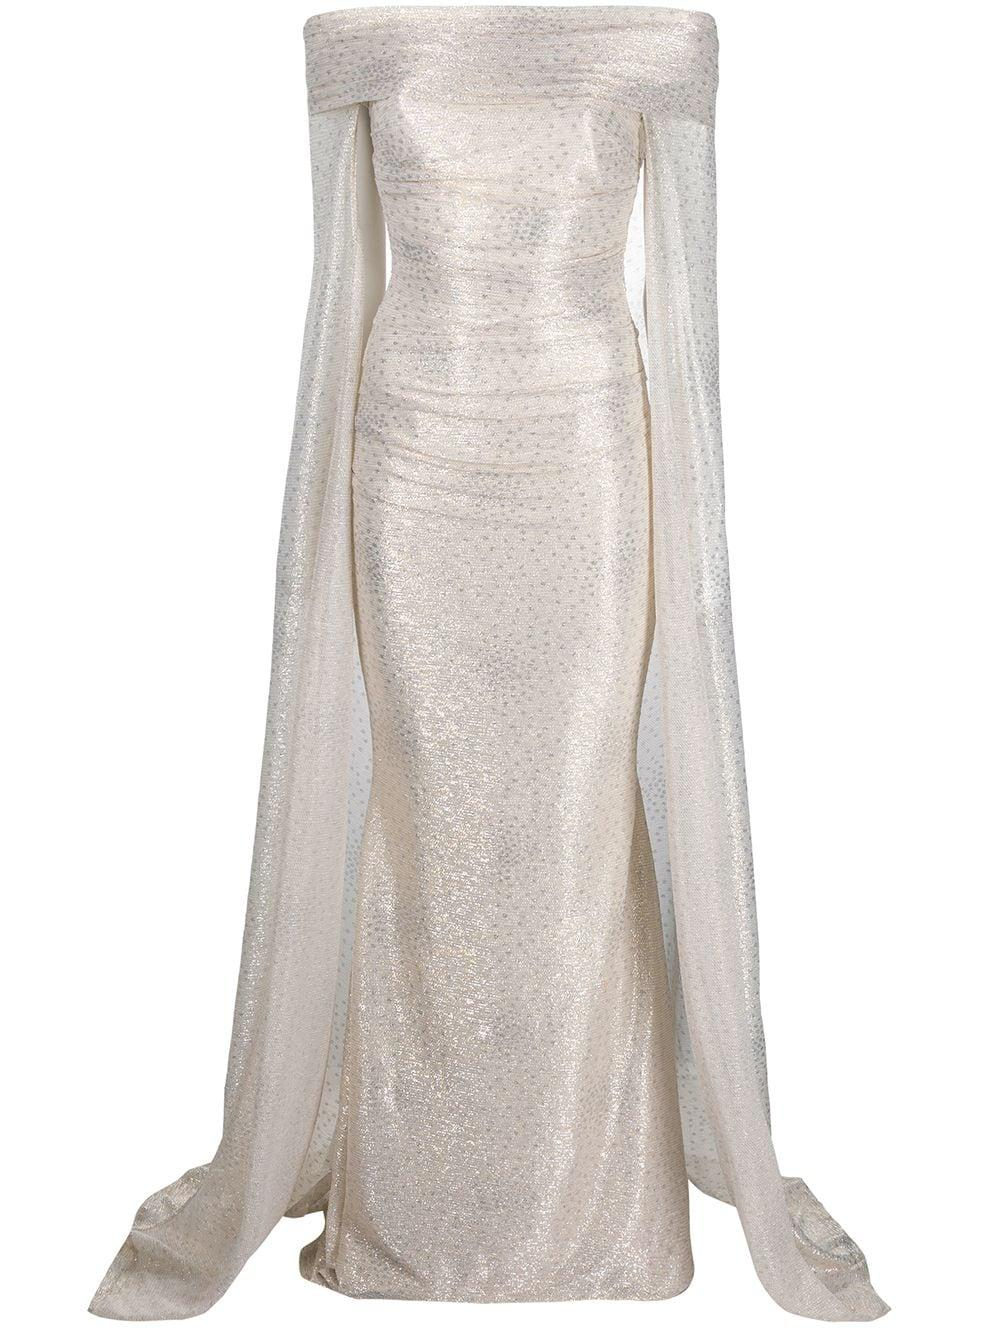 Starburst Metallic Gown With Off Shoulder